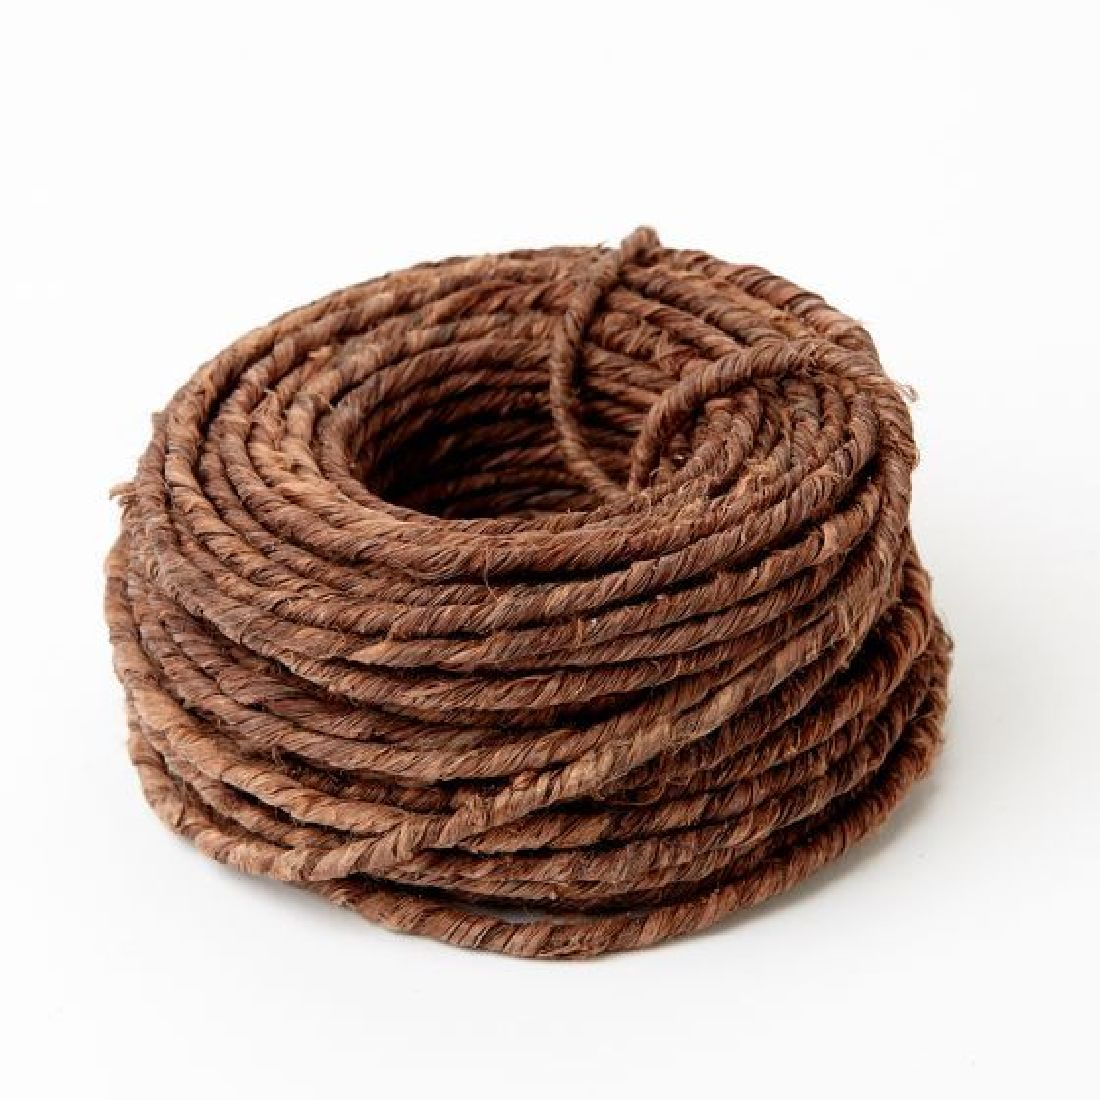 Oasis® Grapewine Wire BRAUN 40-77777 1,2 mm x 22 mtr.